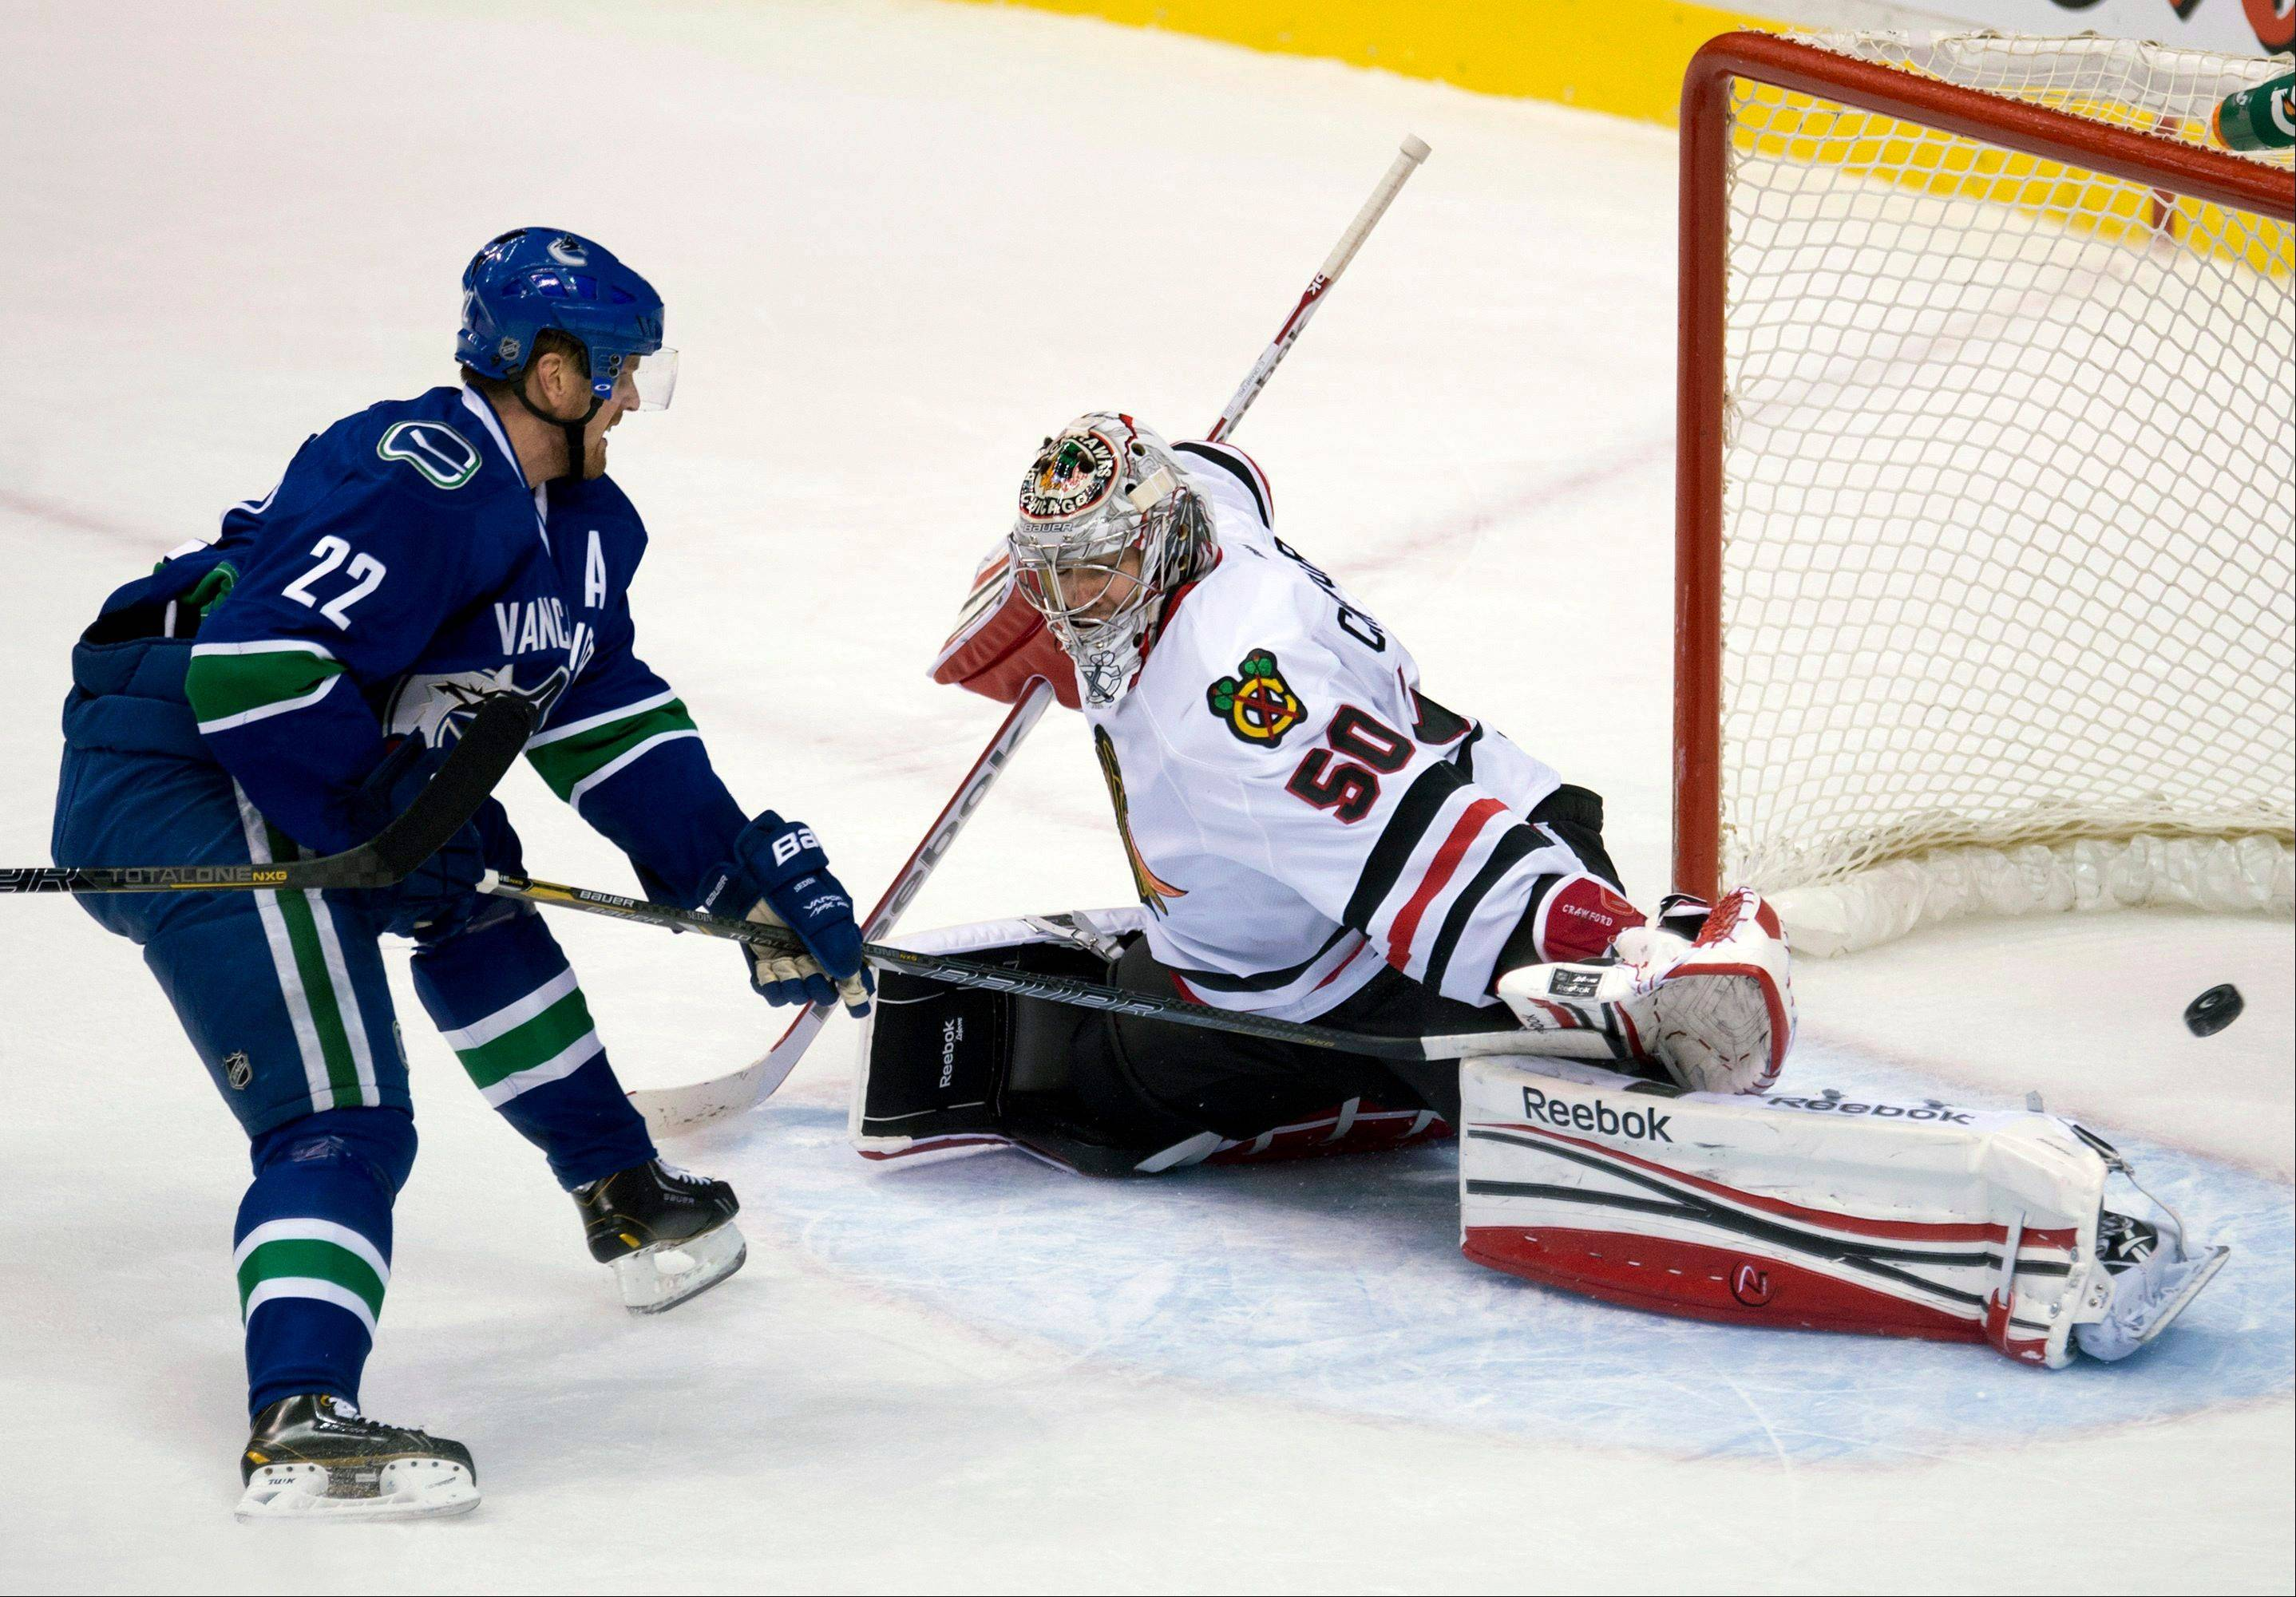 Vancouver Canucks left wing Daniel Sedin (22) scores against Chicago Blackhawks goalie Corey Crawford (50) during the second period of their NHL hockey game in Vancouver, British Columbia, Monday, April 22, 2013.